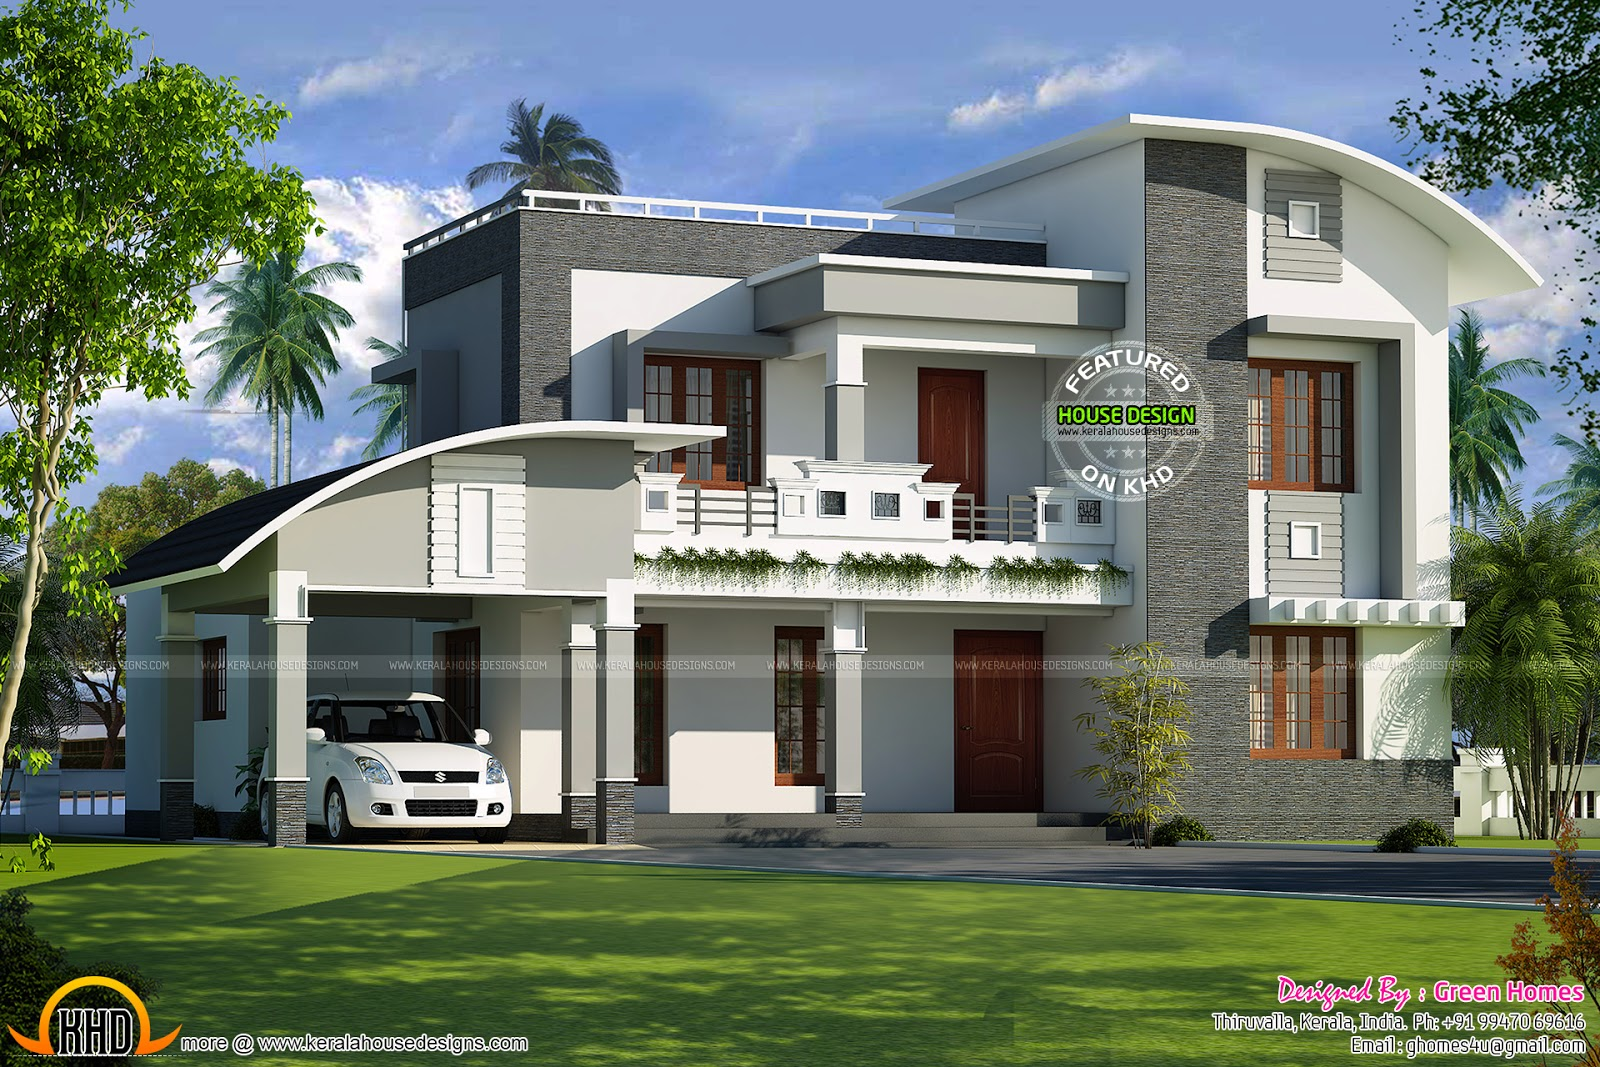 Curved roof flat roof house plan kerala home design and for Kerala house construction plans